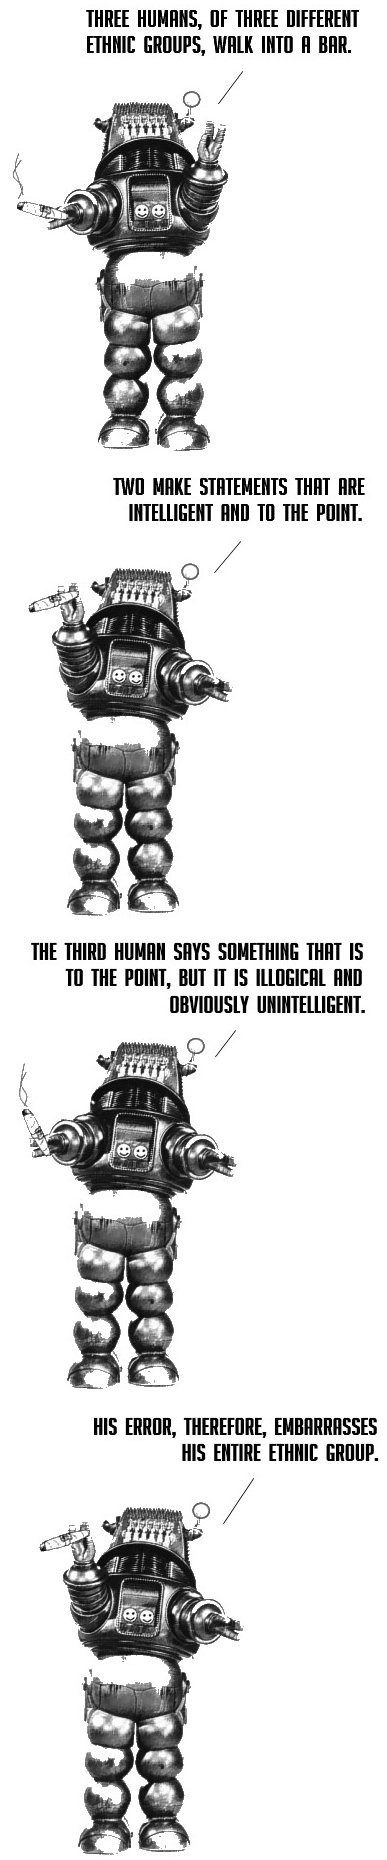 "Robot telling a joke: ""Three humans, of three different ethnic groups, walk into a bar. Two make statements that are intelligent and to the point. The third human says something that is to the point, but it is illogical and obviously unintelligent. His error, therefore, embarrasses his entire enthnic group."""